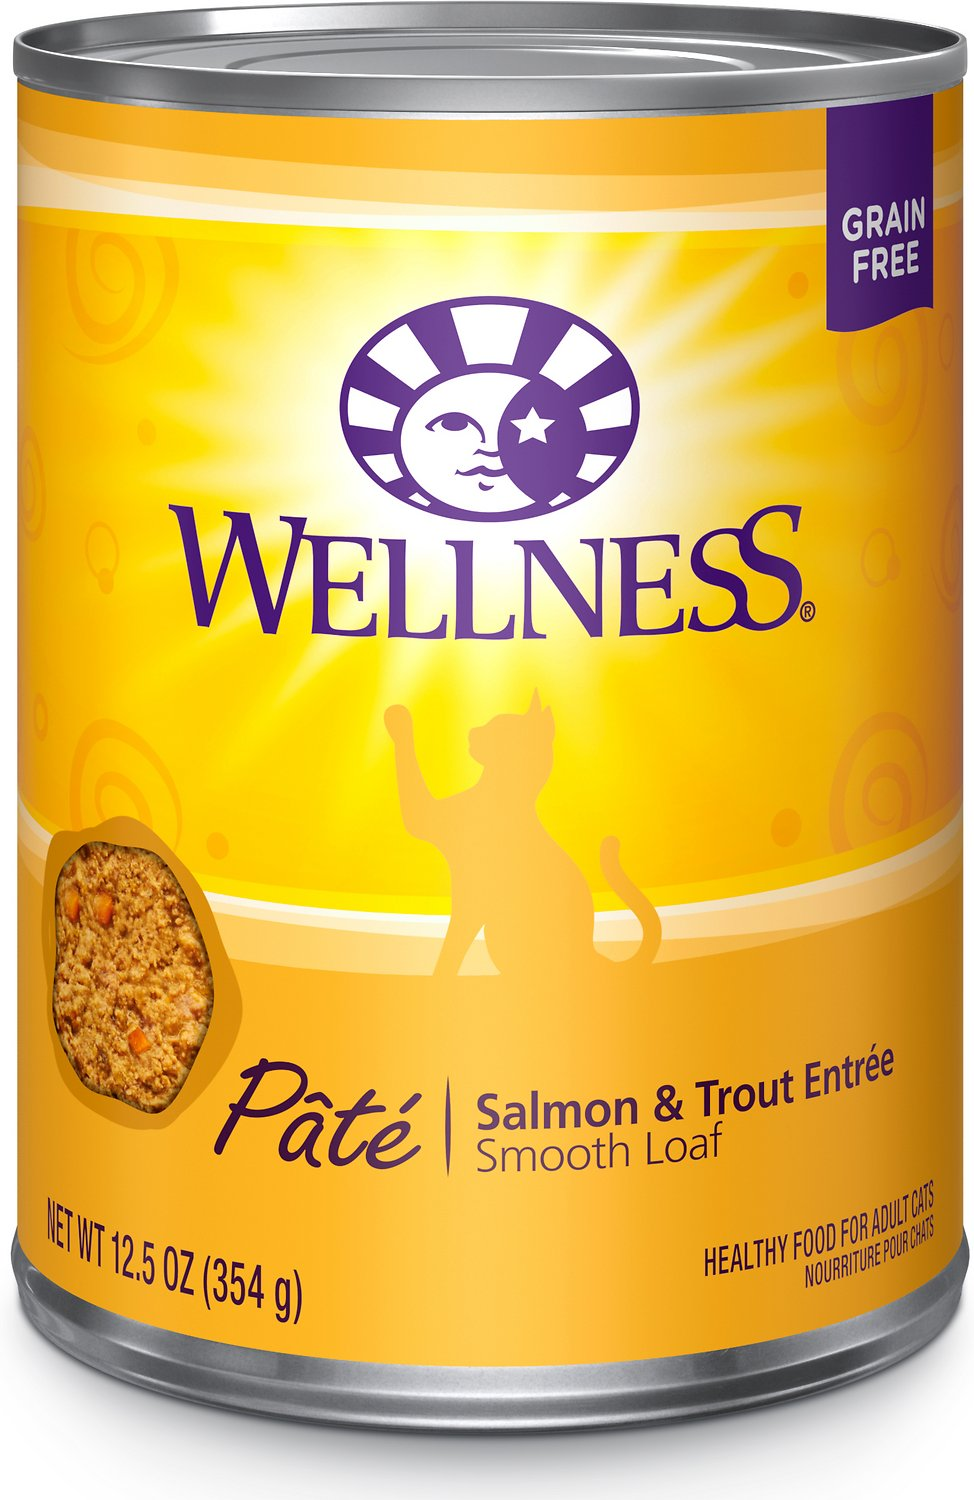 Wellness Complete Health Salmon & Trout Formula Canned Cat Food, 5.5-oz